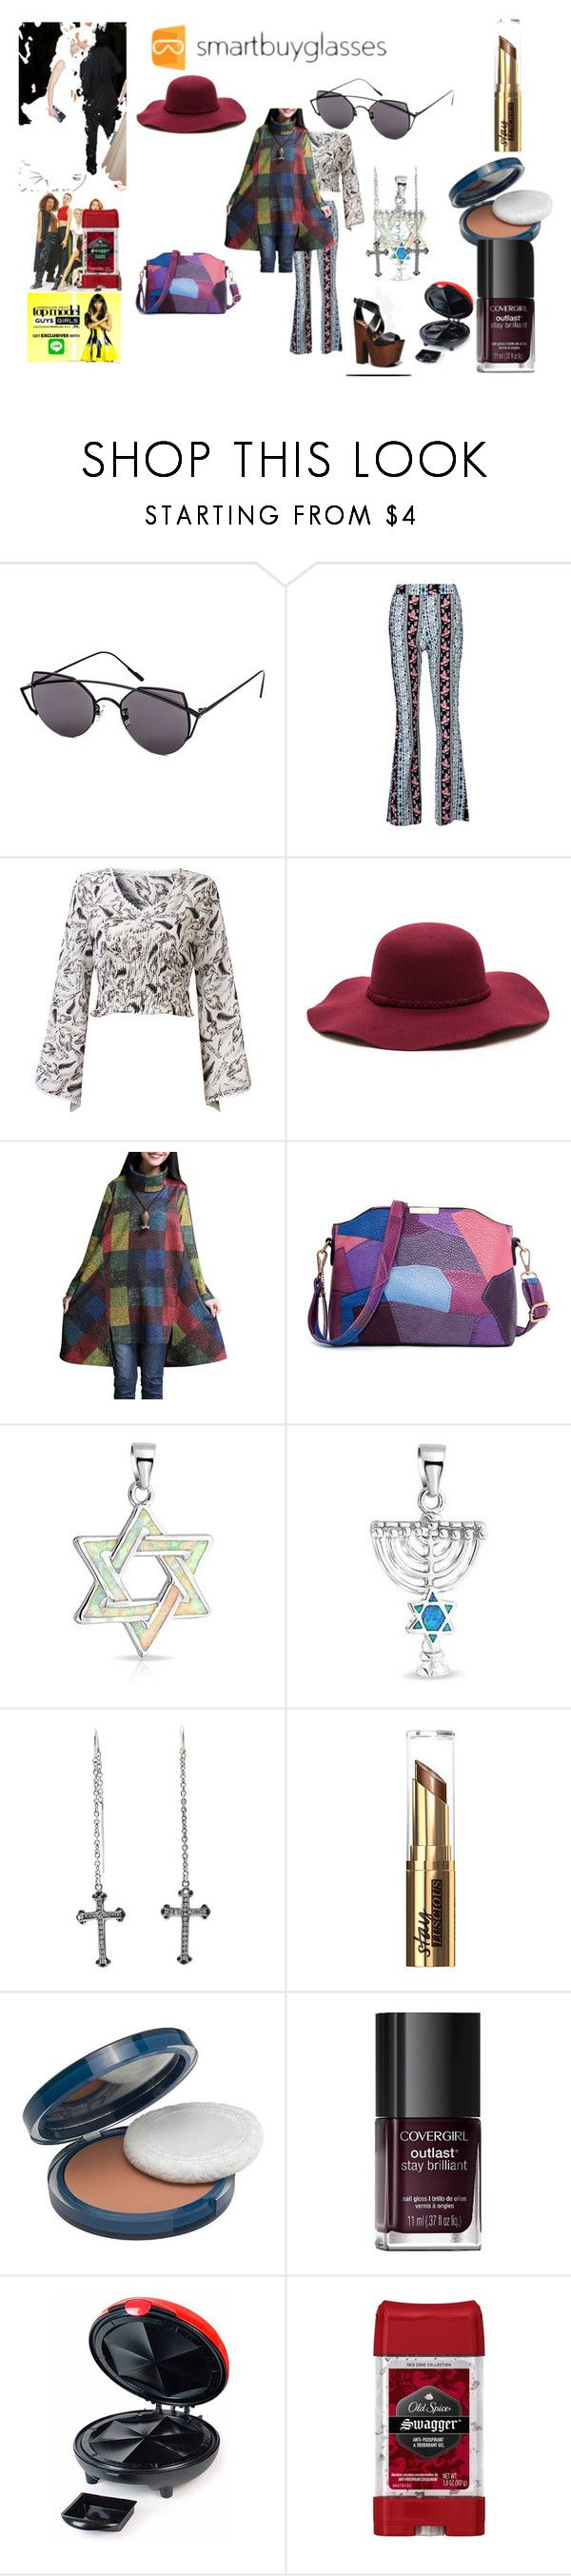 """""""Smartbuyglasses Contest"""" by naomig-dix ❤ liked on Polyvore featuring Gentle Monster, Bling Jewelry, King Baby Studio, COVERGIRL, Nemesis, Nostalgia Electrics, Vanity Fair, Old Spice, sunglasses and smartbuyglasses"""